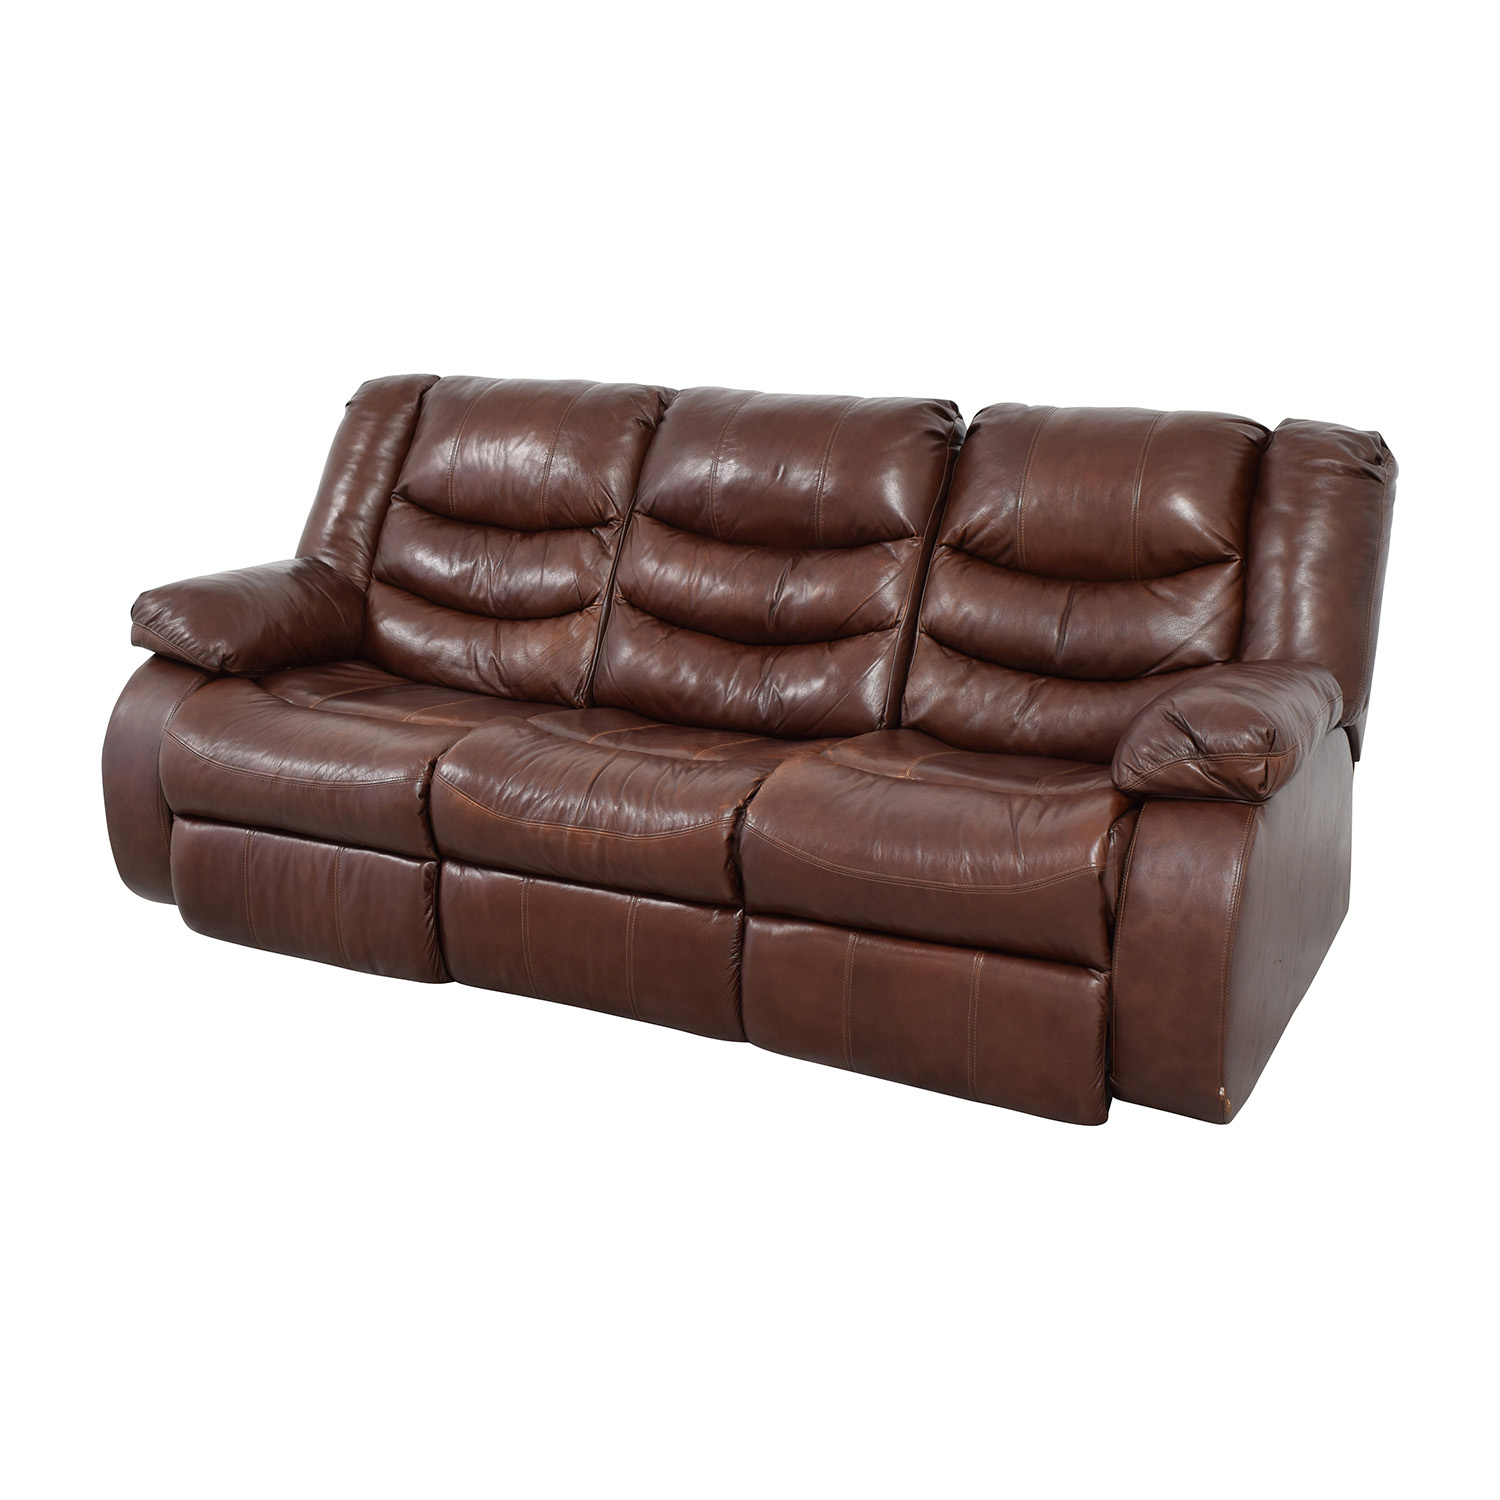 Ashleys Furniture Ashley Furniture Large Brown Leather Reclining Couch nj